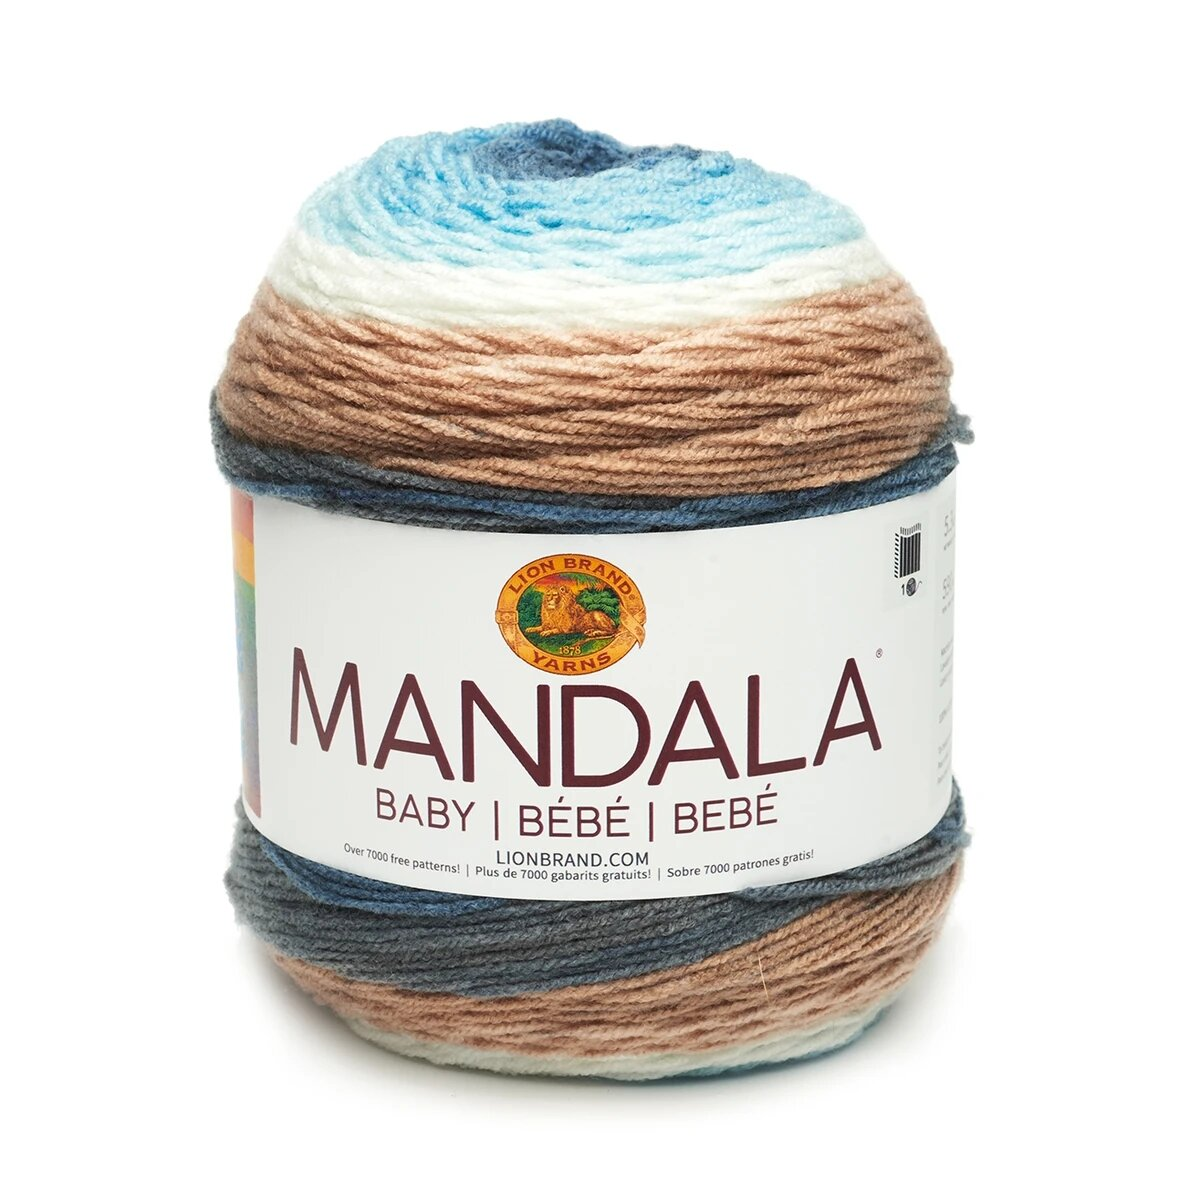 """A cake of blue, white and brown self-striping yarn with white label that says """"Mandala"""""""